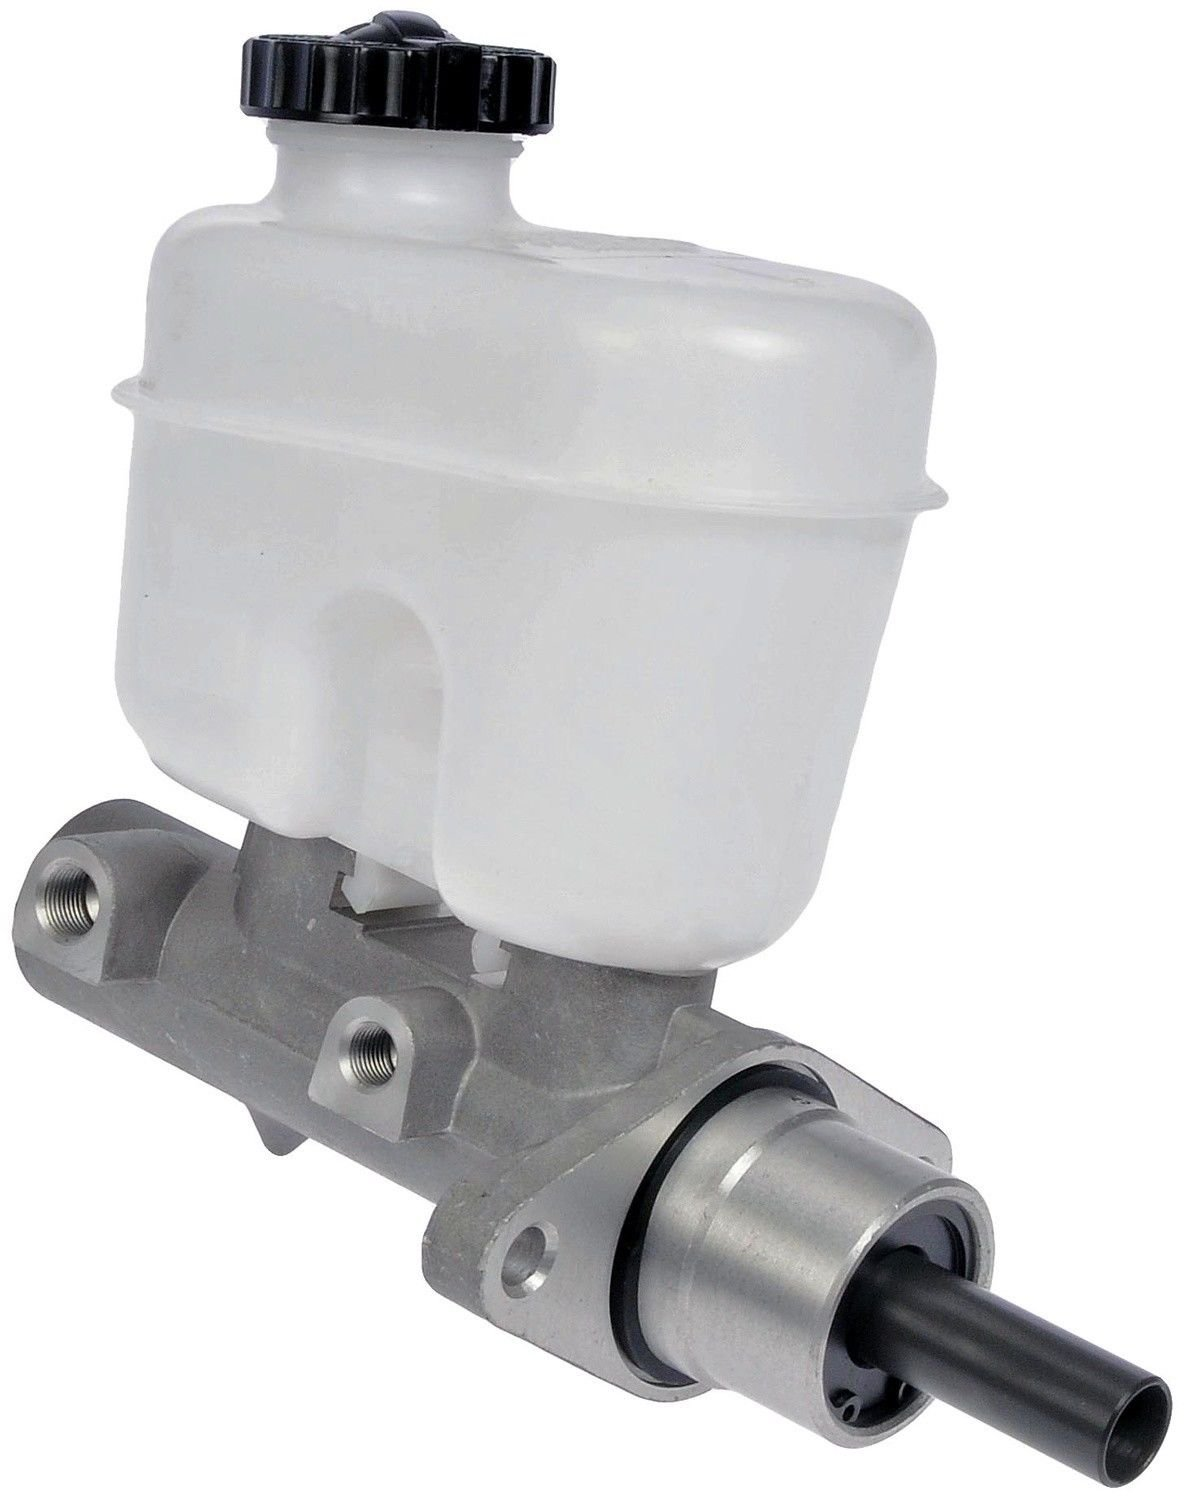 Brake master cylinder for Jeep Grand Cherokee with bleeder plugs - MC390511